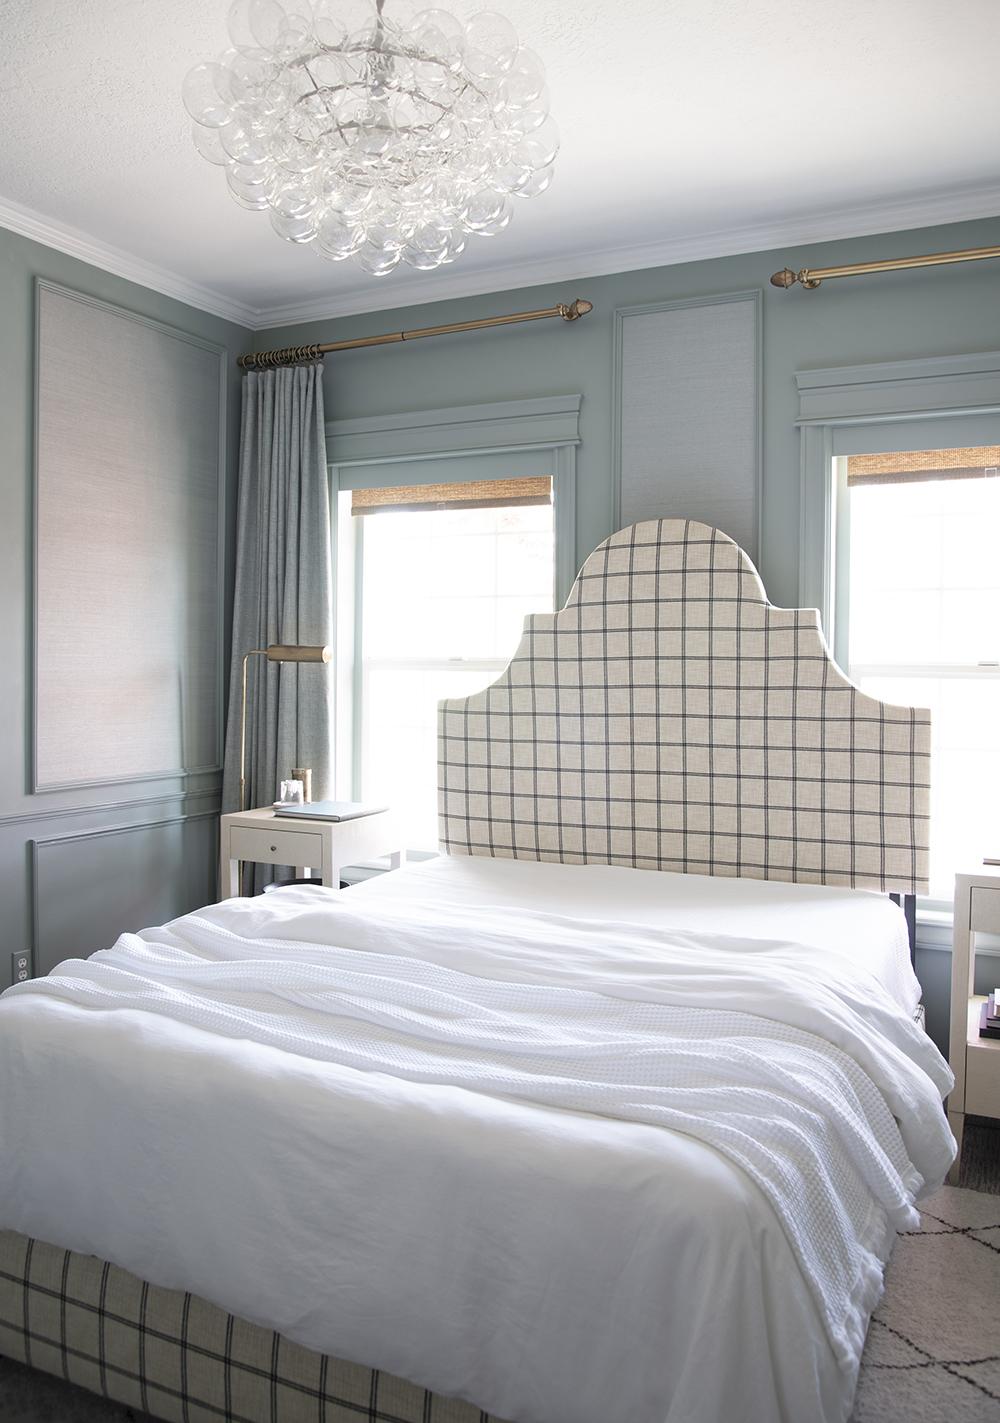 My Go-To Formula for Styling a Bed - roomfortuesday.com